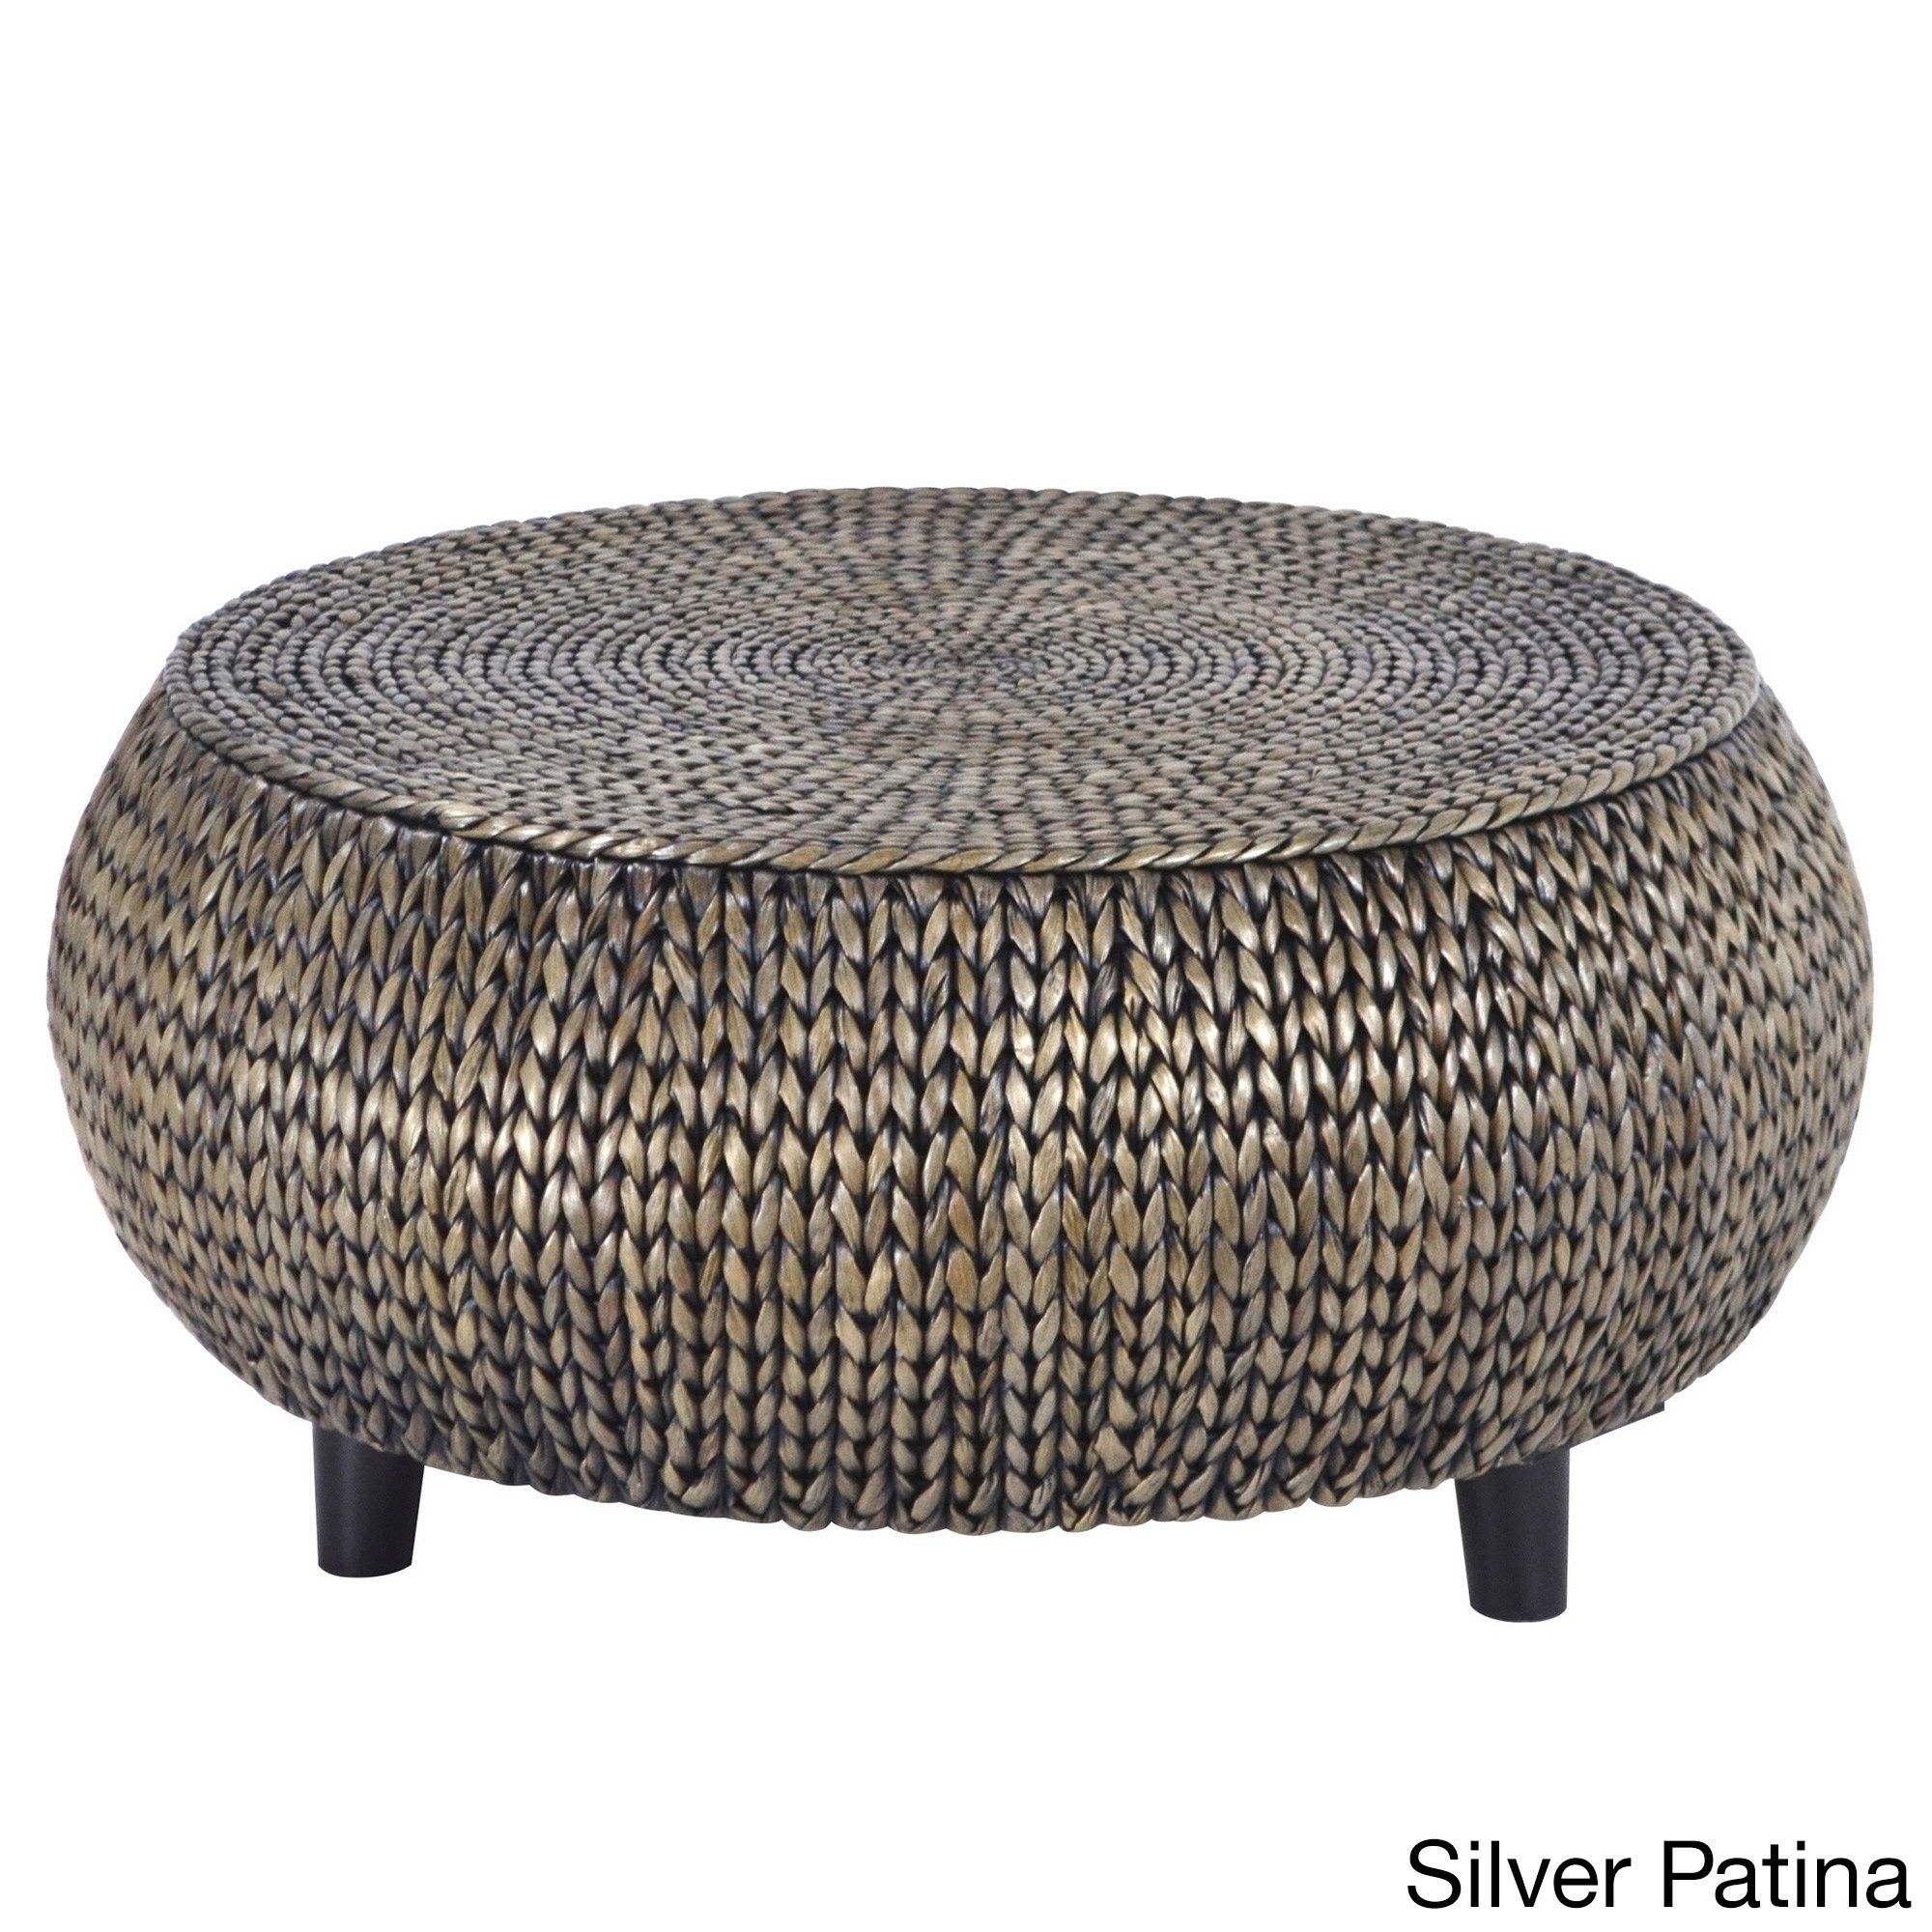 Gallerie decor bali breeze low round coffee table sofa end gallerie decor bali breeze low round coffee table geotapseo Image collections